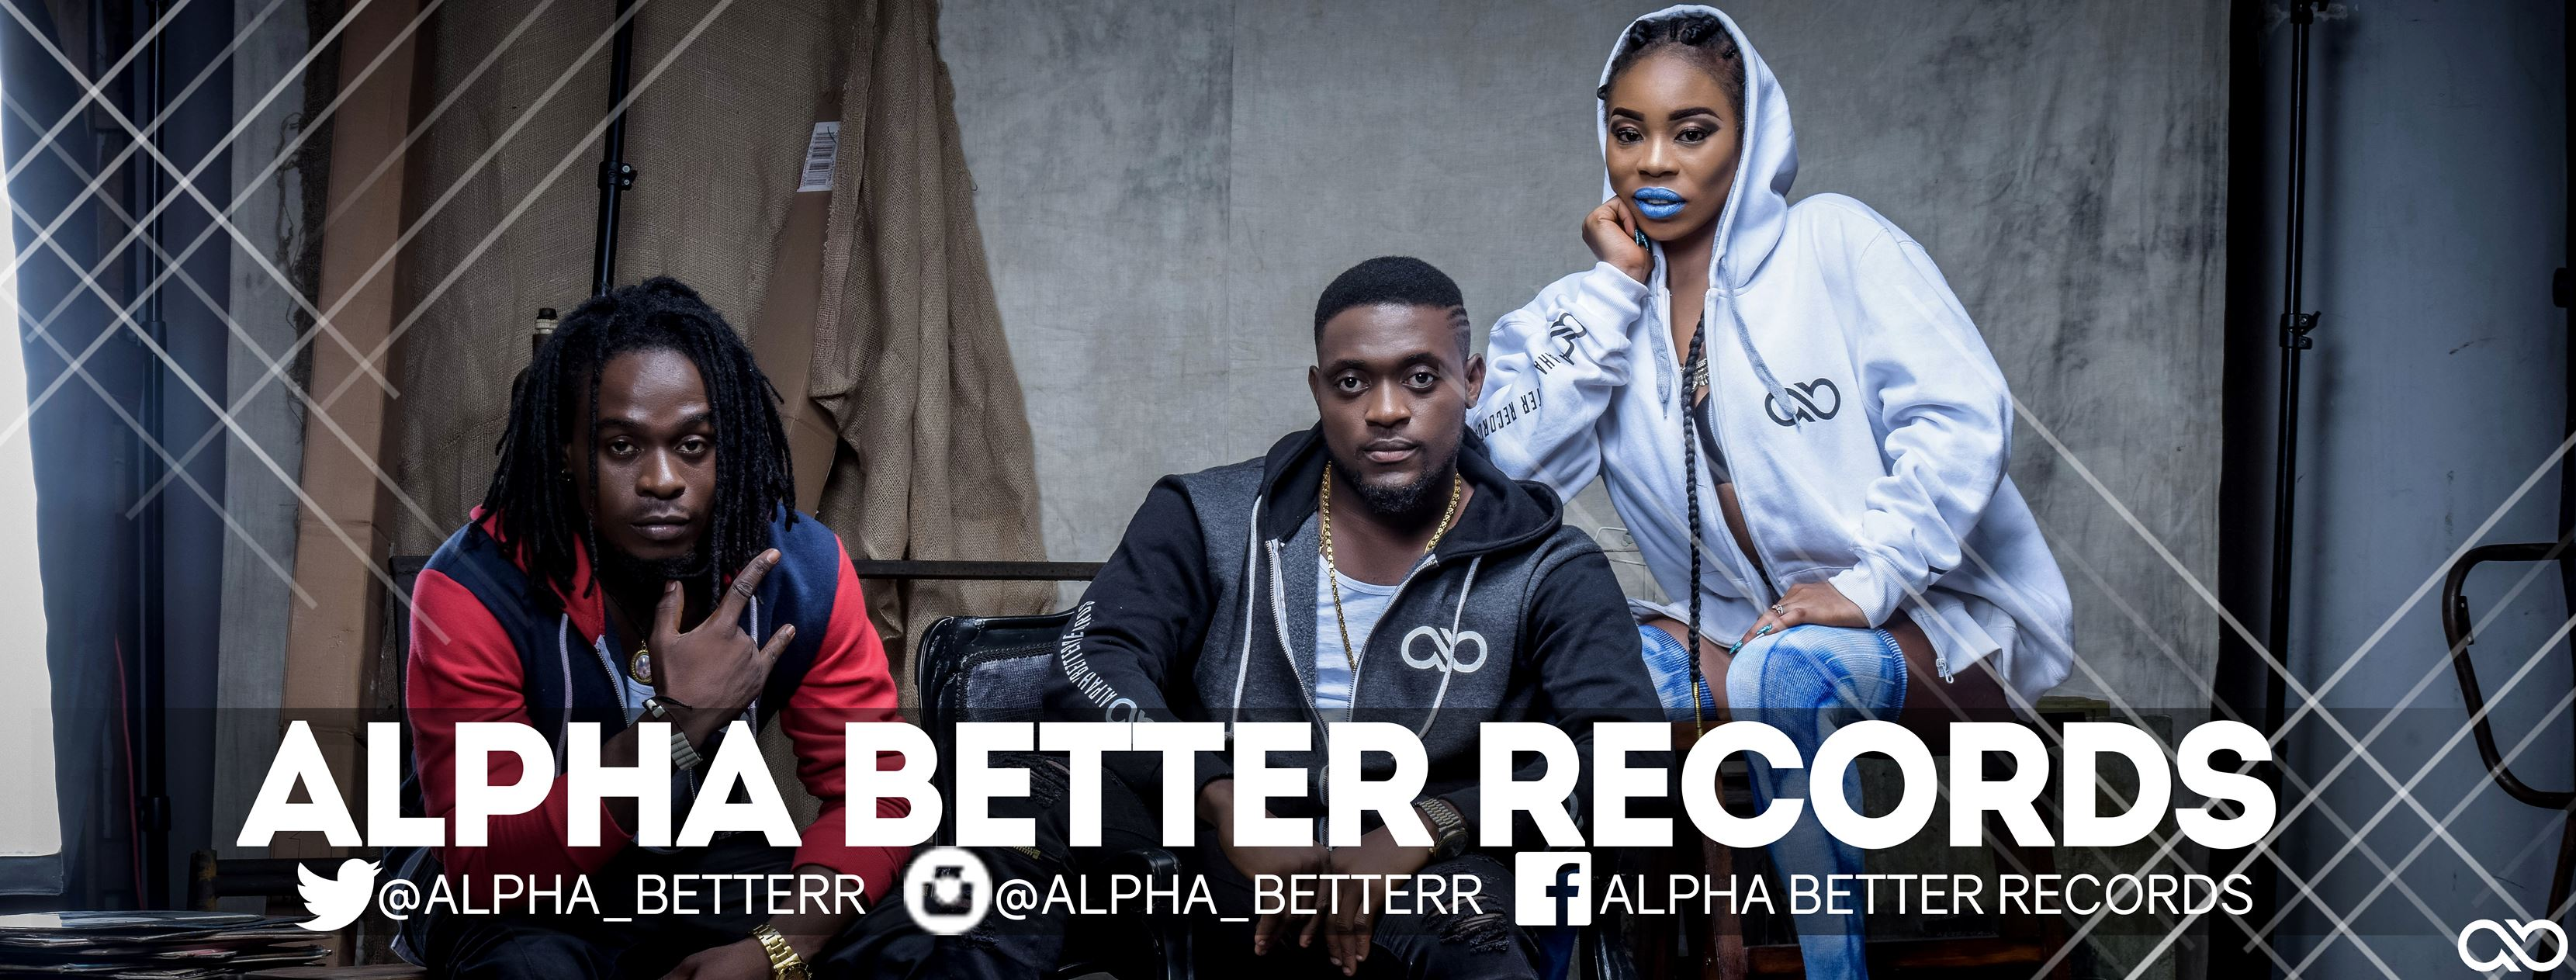 Mr. Leo, Salatiel and Askia (faces of Alpha Better Records)